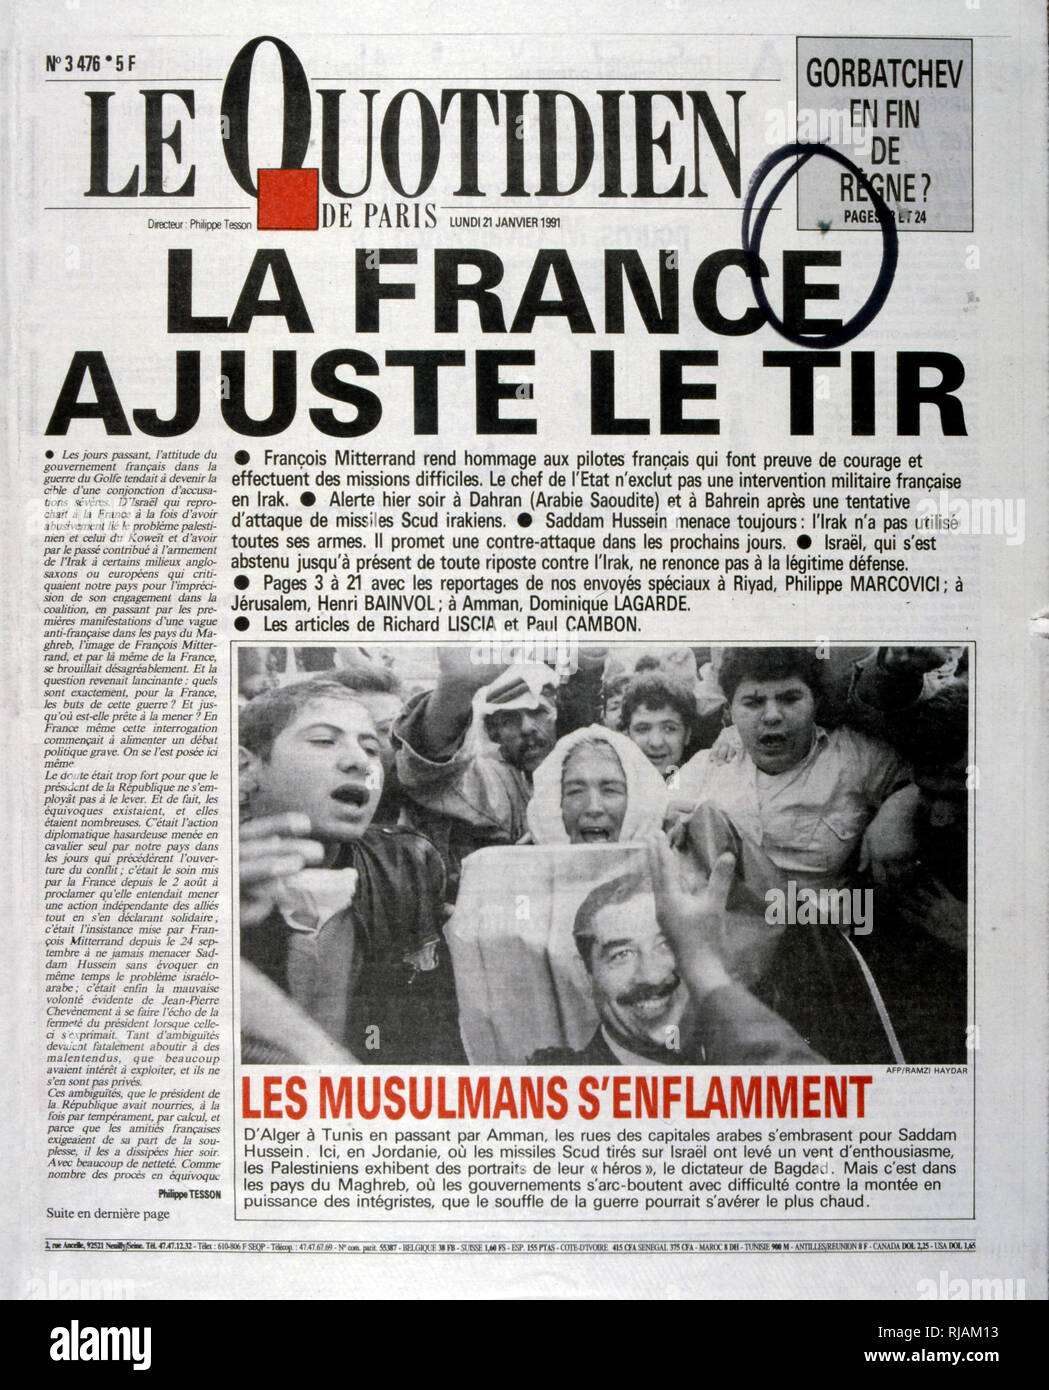 Headline in 'Le Quotidien' a French newspaper, 21st January 1991, concerning the loss of French pilots in the Gulf War (2 August 1990 - 28 February 1991). codenamed Operation Desert Shield and Operation Desert Storm, the war waged by coalition forces from 35 nations led by the United States against Iraq in response to Iraq's invasion and annexation of Kuwait. - Stock Image